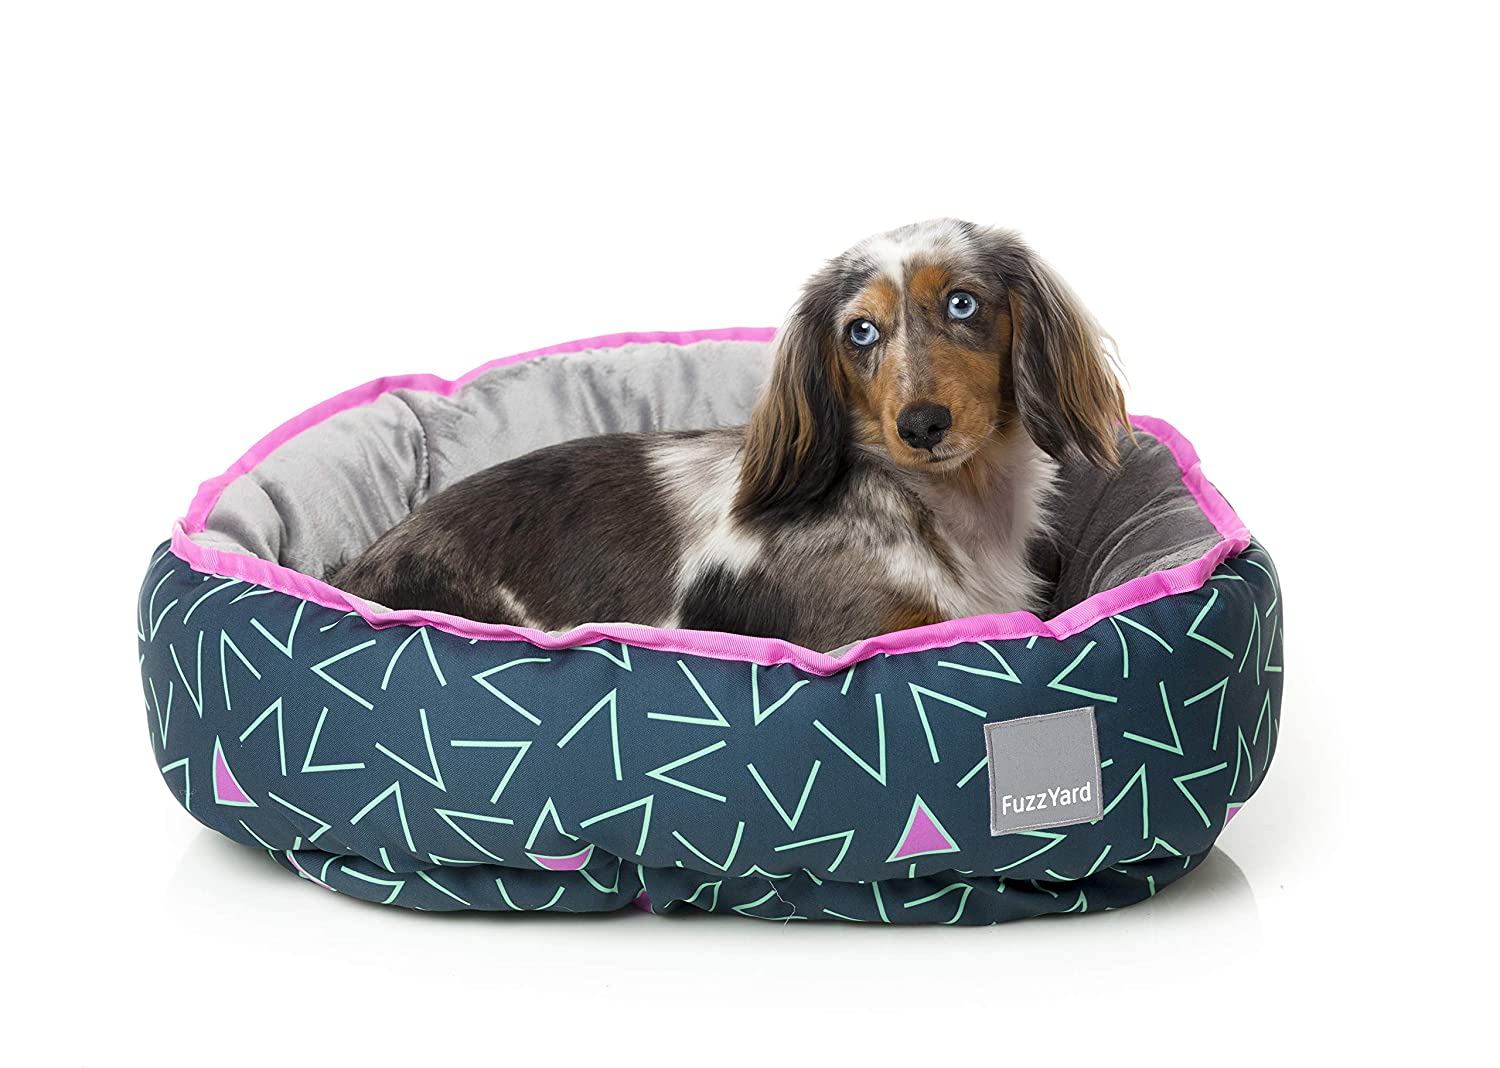 FuzzYard Voltage Reversible Dog Bed Small